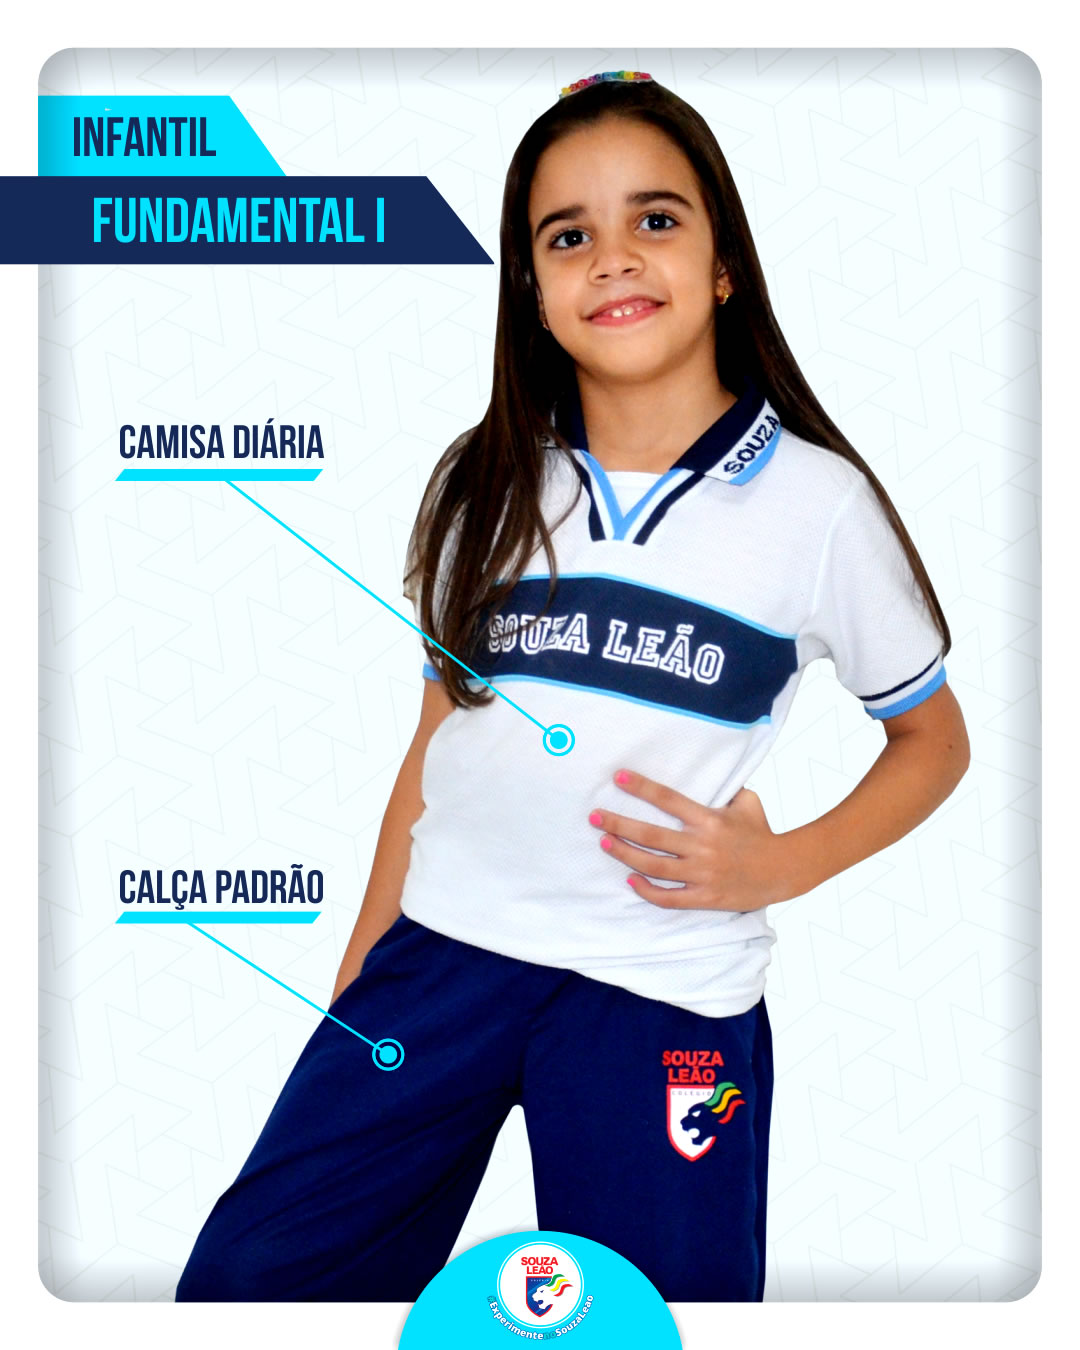 Camisa Diaria Calca Padrao Fundamental 1